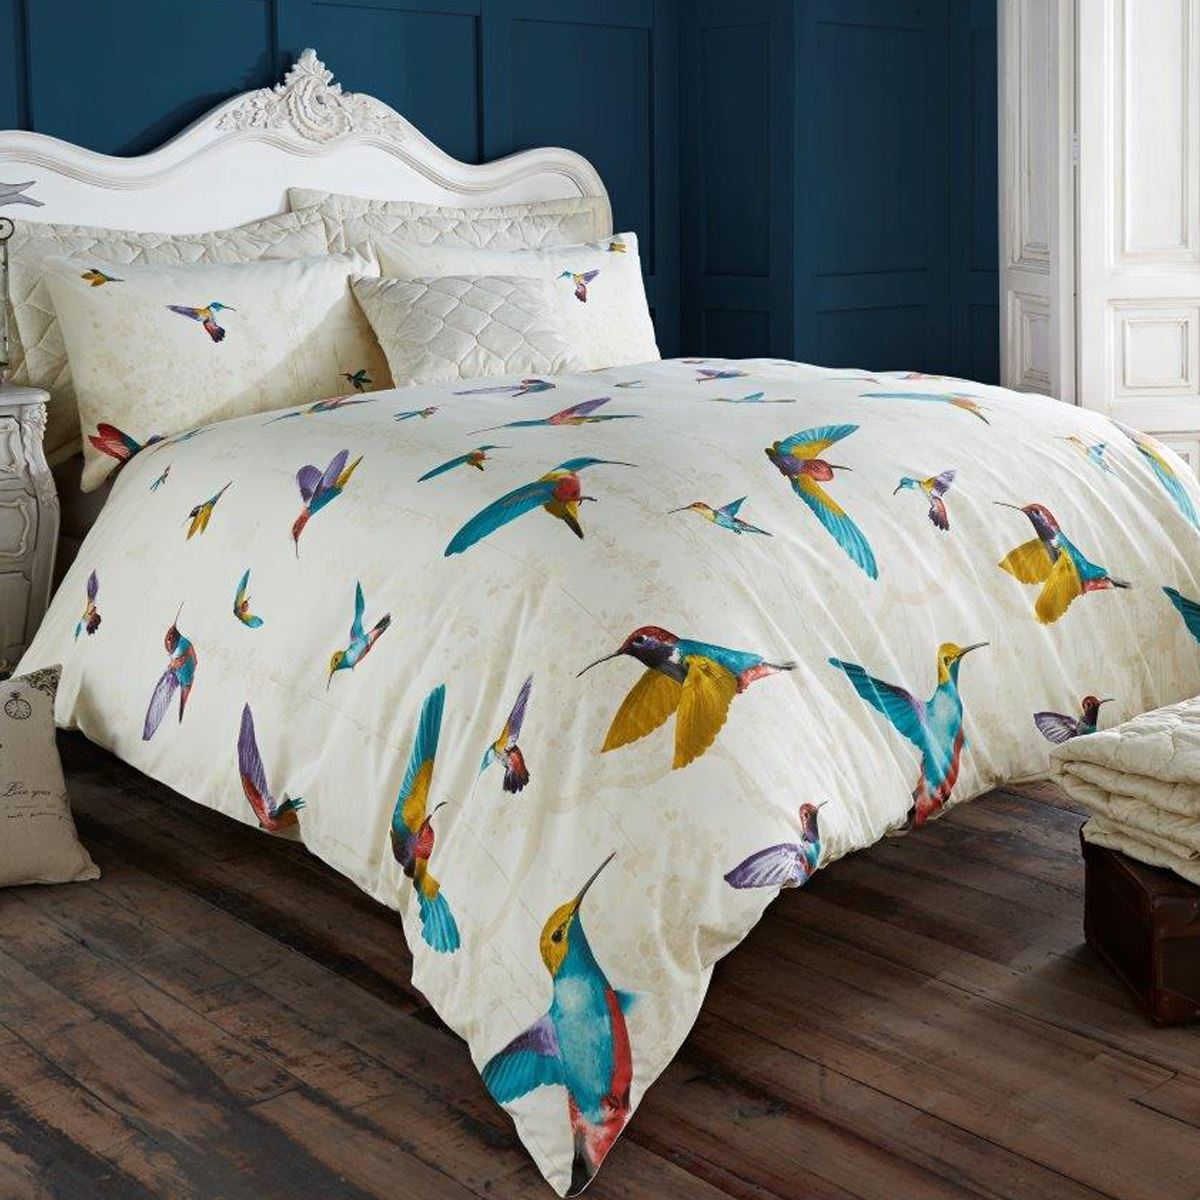 Girls Twin Bedroom With Bird Wallpaper: Humming Bird Duvet Cover With Pillowcase Quilt Cover Bed